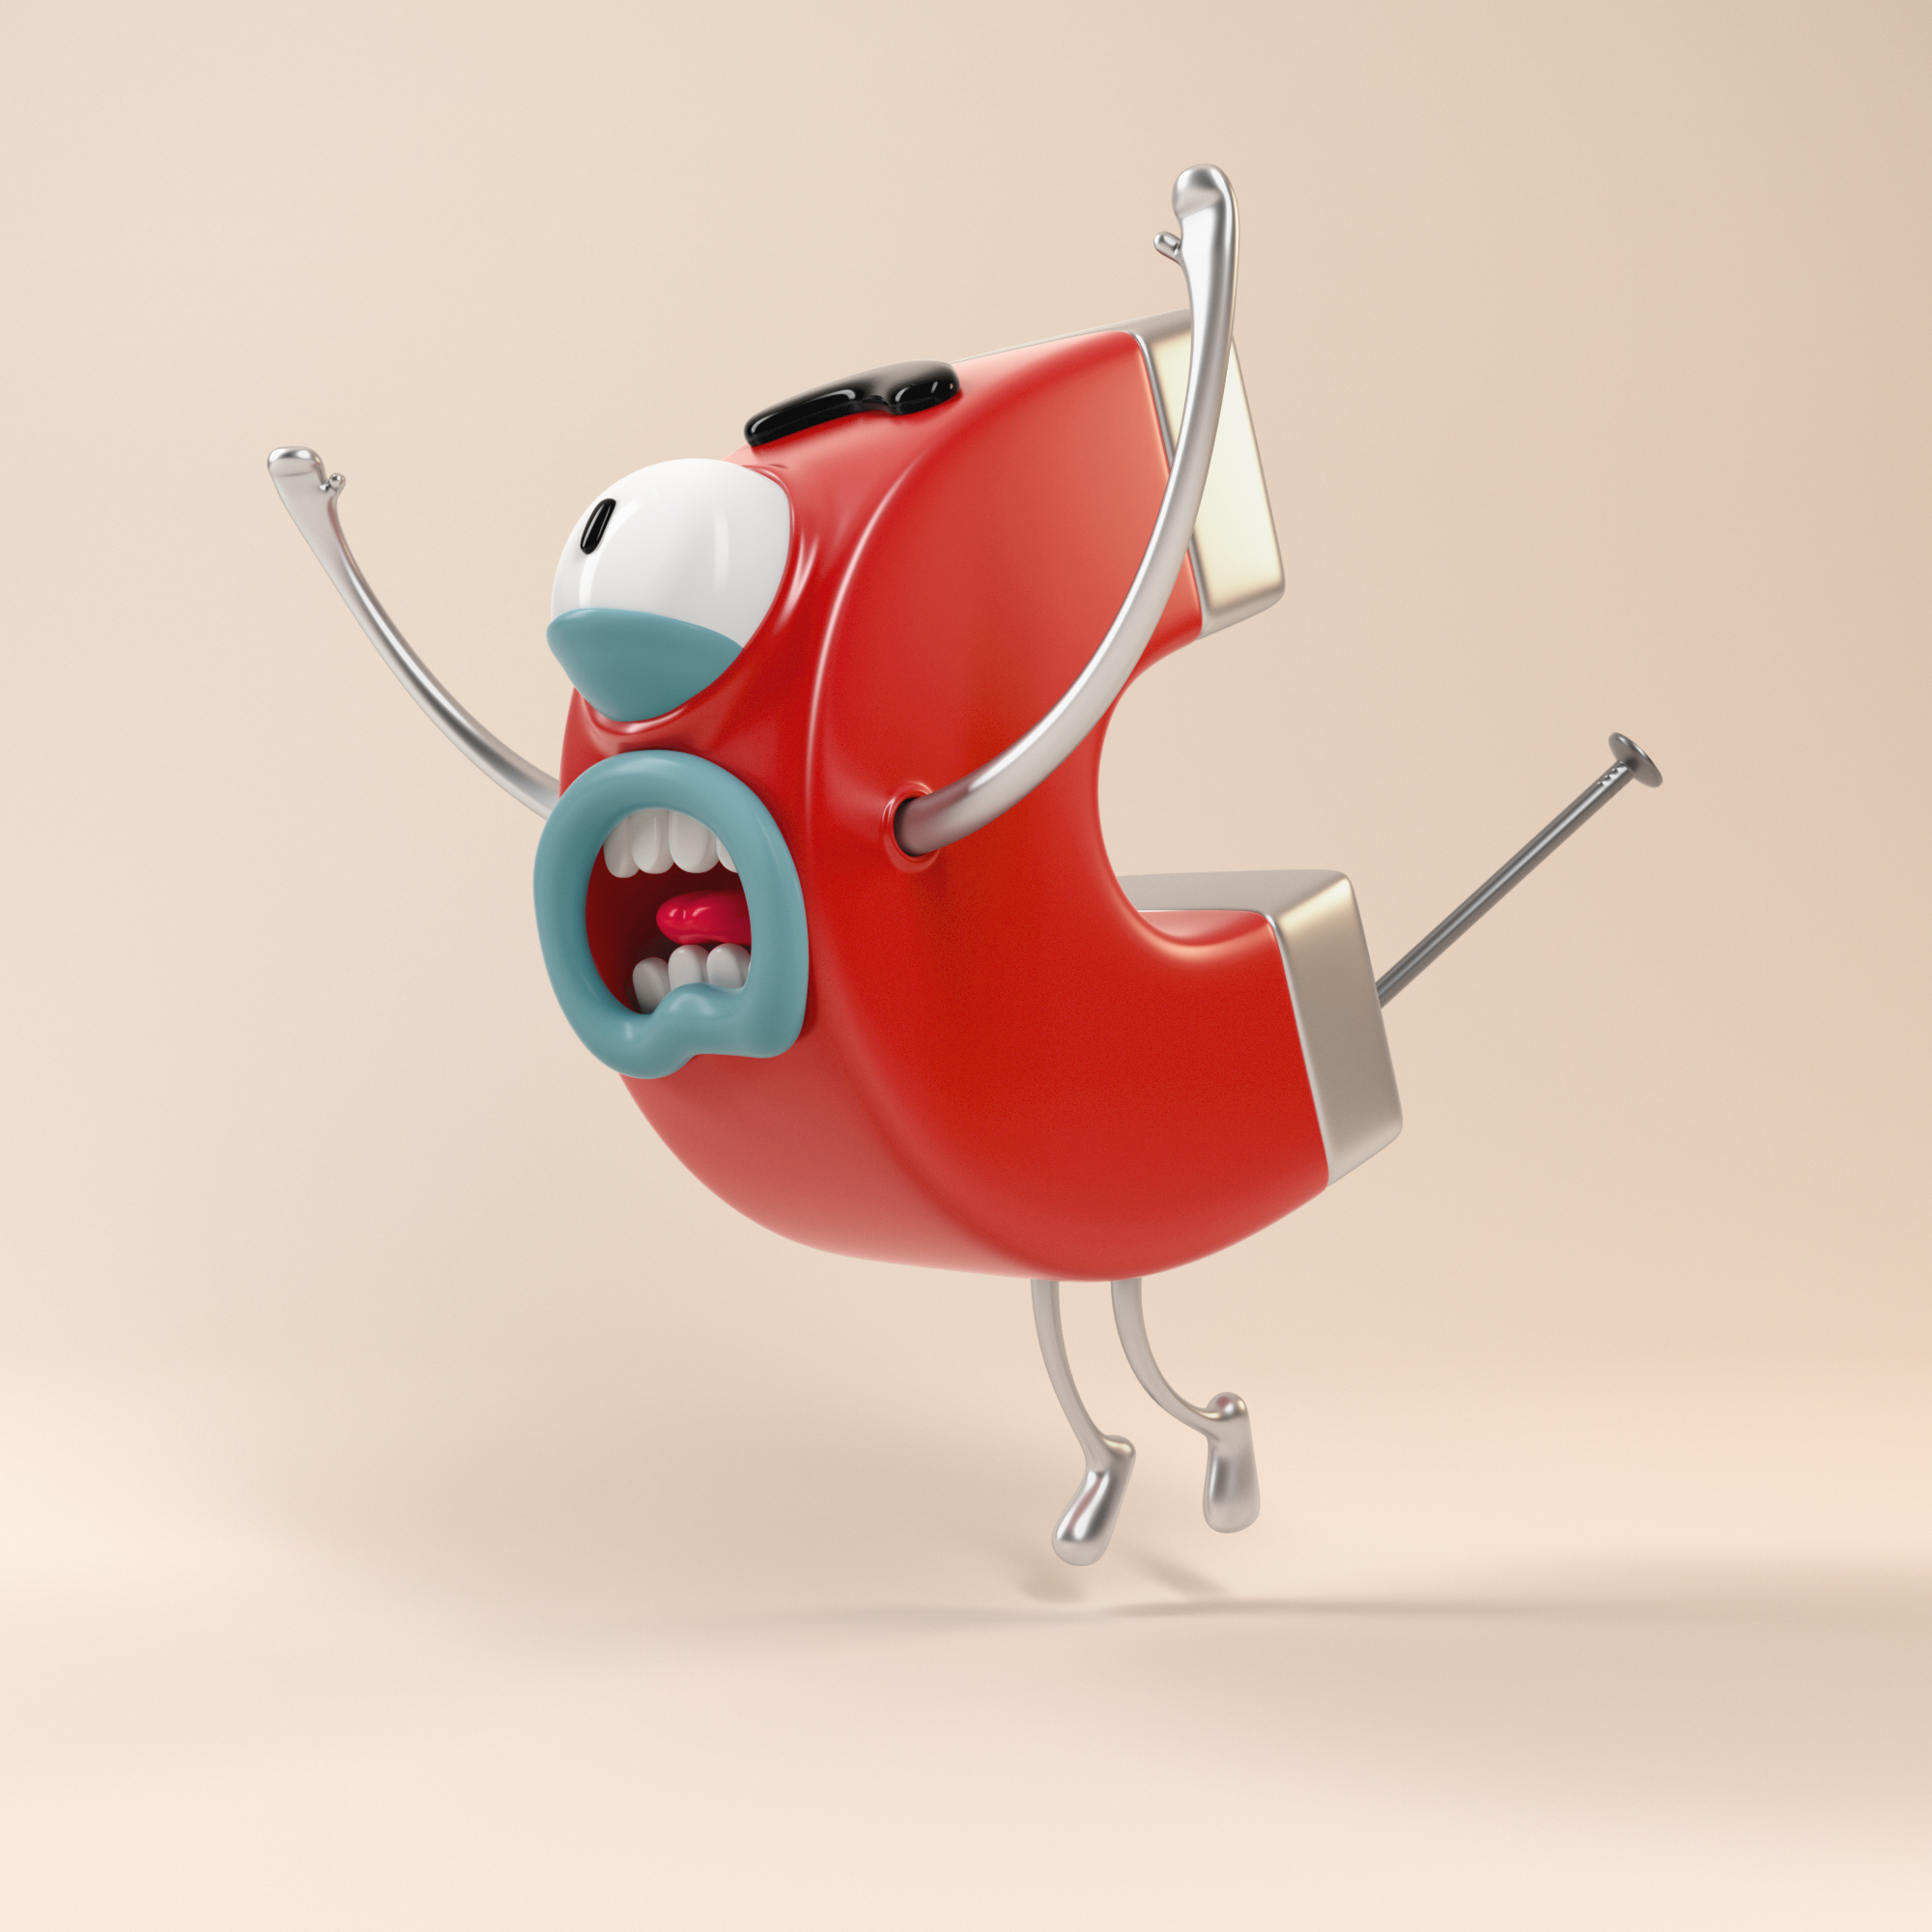 Illustration and Character Design and Art Direction